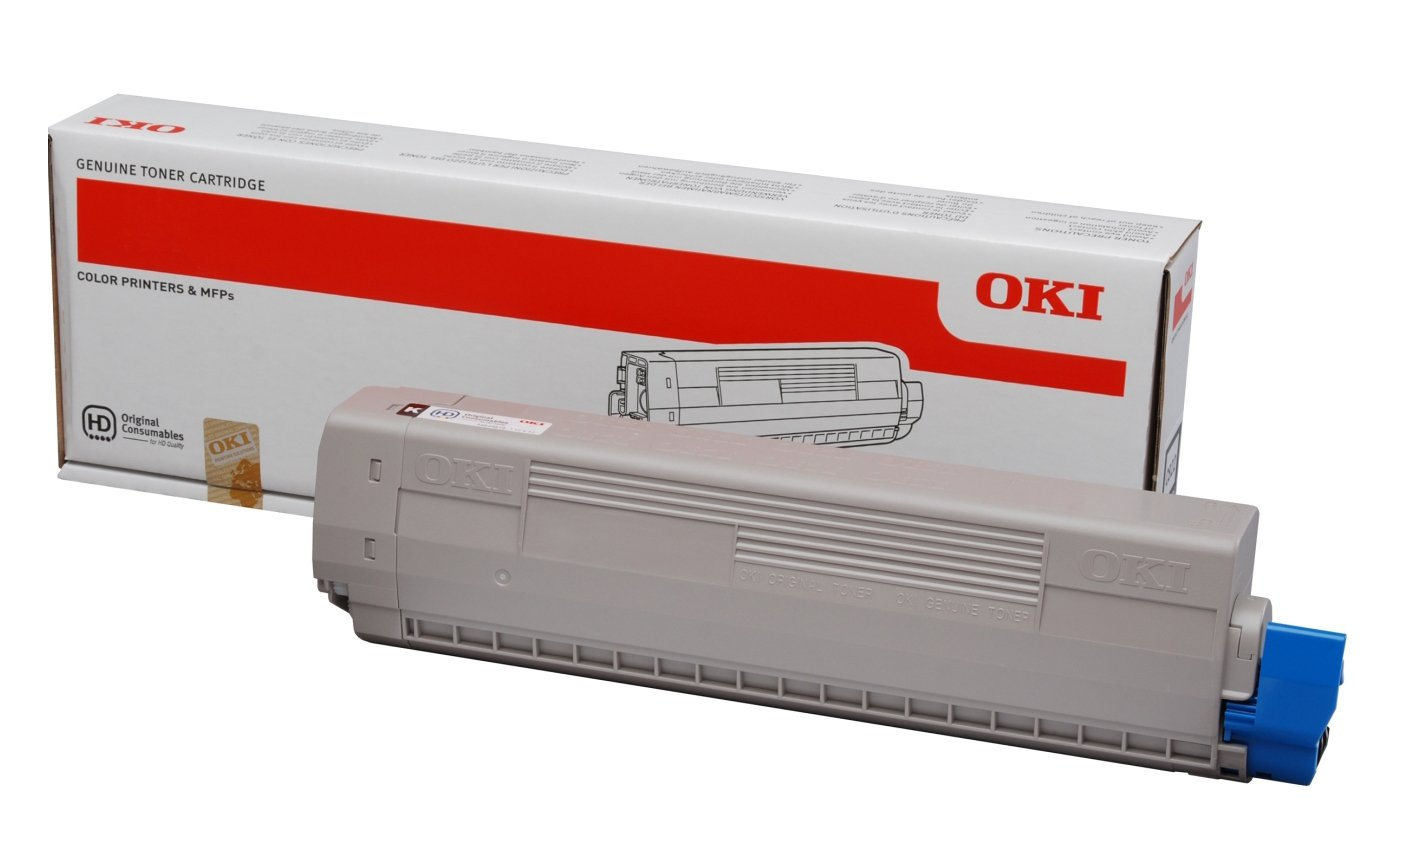 Genuine Black OKI 44844616 Toner Cartridge - (44844616 Laser Printer Cartridge)